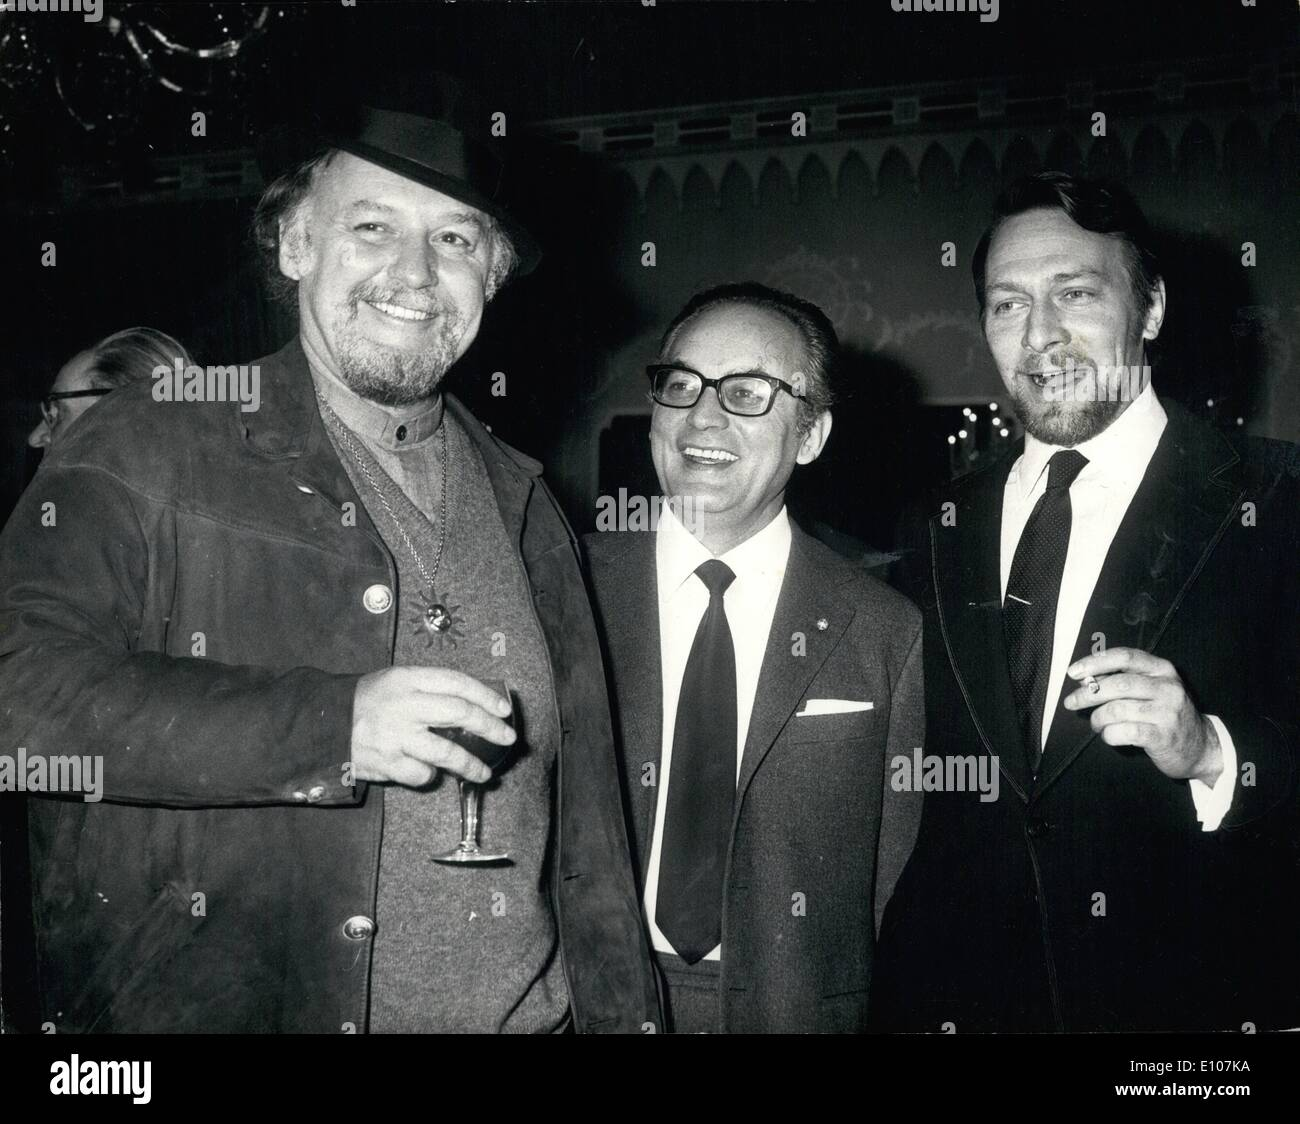 Feb. 02, 1970 - Press reception for new film ''Waterloo'': There was a Press reception for the new film 'Waterloo'', at the Dorchester Hotel, London, last night. Photo shows (l to r) Rod Steiger, who plays Napoleon; Dino De Laurentiis, Producer of the film; and Christopher Plummer, who plays the Duke of Wellington pictured at last night's reception. - Stock Image